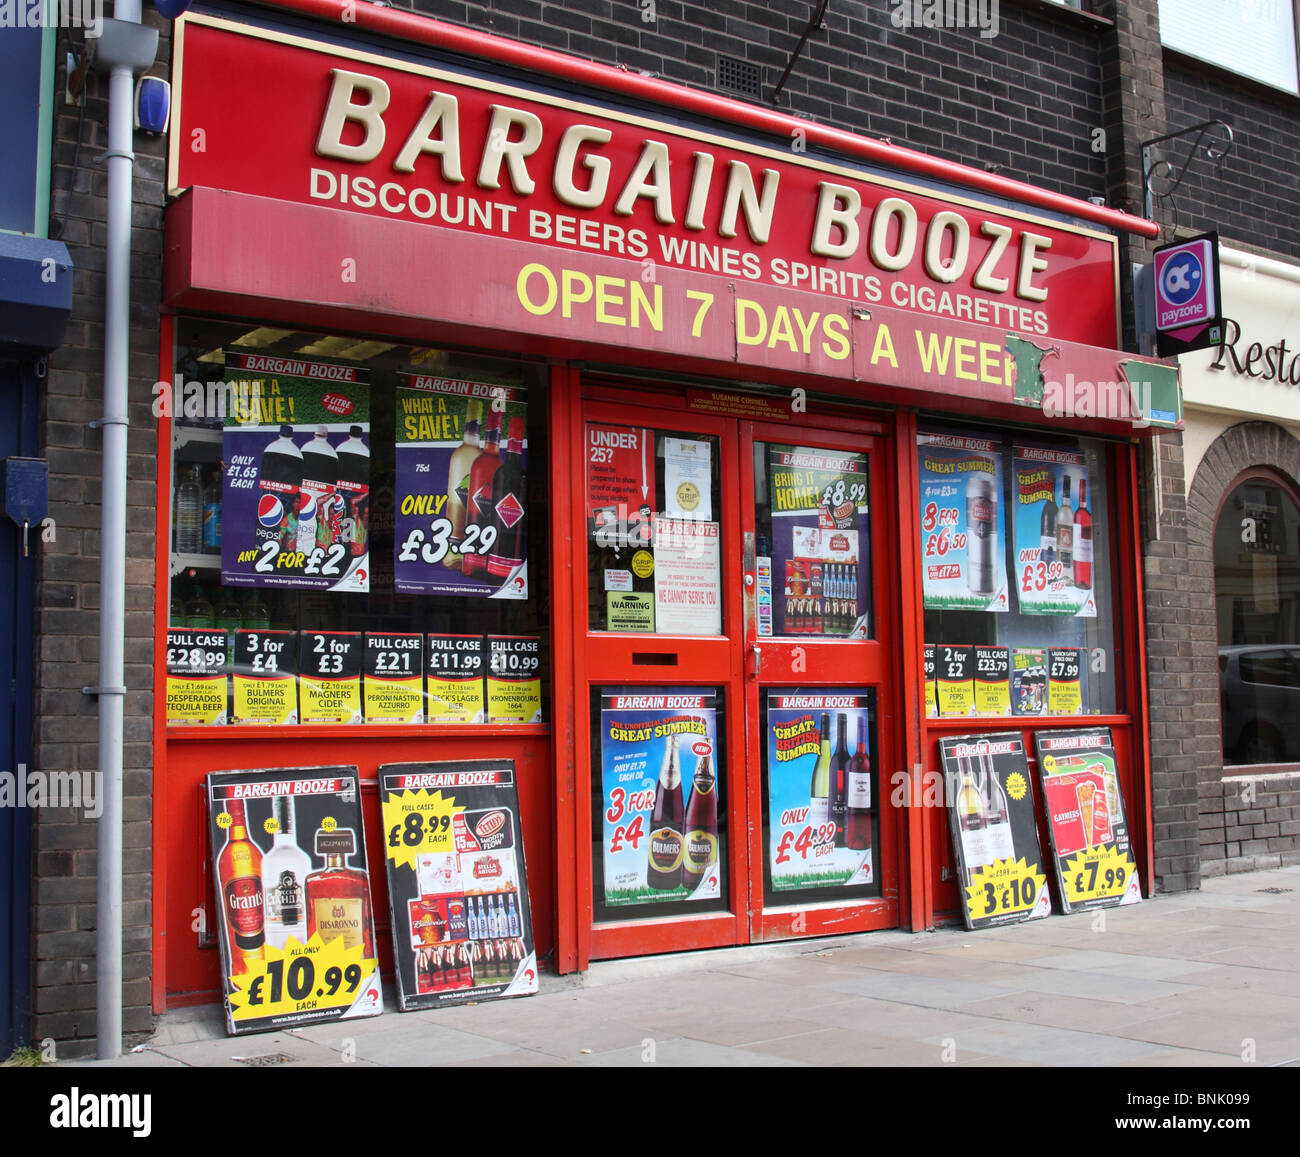 A Bargain Booze store in a U.K. town. - Stock Image